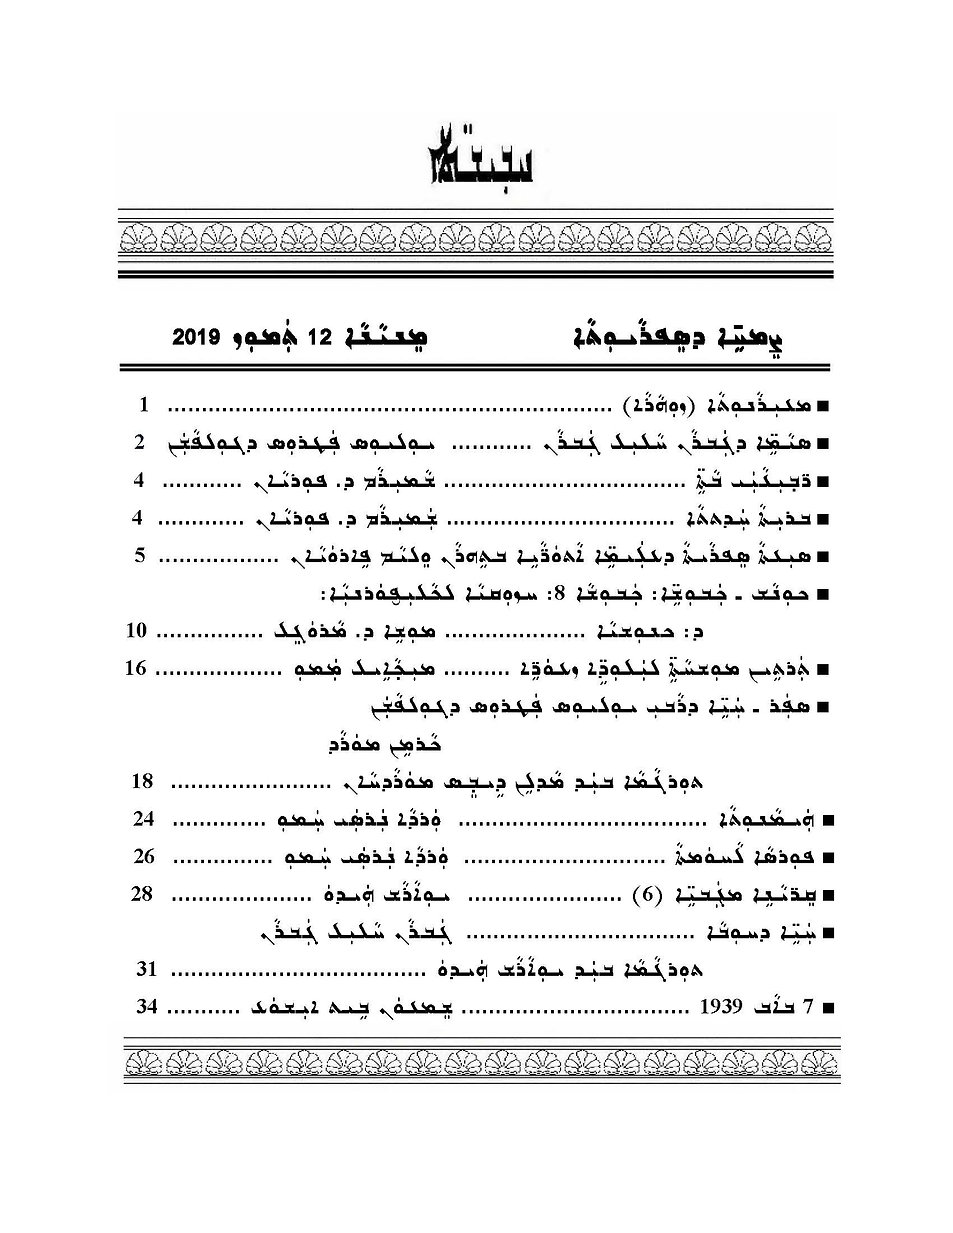 Simkhe Issue 12 Contents.jpg